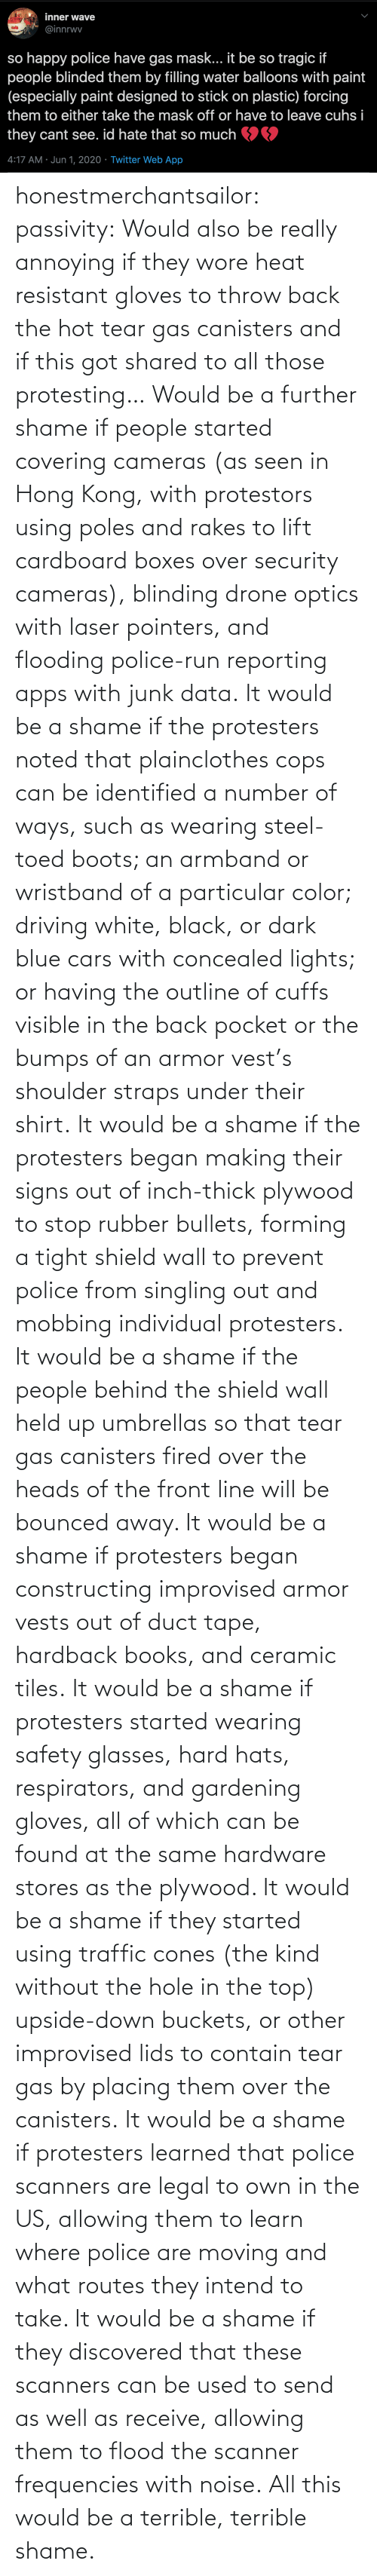 Wiki: honestmerchantsailor: passivity: Would also be really annoying if they wore heat resistant gloves to throw back the hot tear gas canisters and if this got shared to all those protesting… Would be a further shame if people started covering cameras (as seen in Hong Kong, with protestors using poles and rakes to lift cardboard boxes over security cameras), blinding drone optics with laser pointers, and flooding police-run reporting apps with junk data. It would be a shame if the protesters noted that plainclothes cops can be identified a number of ways, such as wearing steel-toed boots; an armband or wristband of a particular color; driving white, black, or dark blue cars with concealed lights; or having the outline of cuffs visible in the back pocket or the bumps of an armor vest's shoulder straps under their shirt. It would be a shame if the protesters began making their signs out of inch-thick plywood to stop rubber bullets, forming a tight shield wall to prevent police from singling out and mobbing individual protesters. It would be a shame if the people behind the shield wall held up umbrellas so that tear gas canisters fired over the heads of the front line will be bounced away. It would be a shame if protesters began constructing improvised armor vests out of duct tape, hardback books, and ceramic tiles. It would be a shame if protesters started wearing safety glasses, hard hats, respirators, and gardening gloves, all of which can be found at the same hardware stores as the plywood. It would be a shame if they started using traffic cones (the kind without the hole in the top) upside-down buckets, or other improvised lids to contain tear gas by placing them over the canisters. It would be a shame if protesters learned that police scanners are legal to own in the US, allowing them to learn where police are moving and what routes they intend to take. It would be a shame if they discovered that these scanners can be used to send as well as receive, allowing them to flood the scanner frequencies with noise. All this would be a terrible, terrible shame.